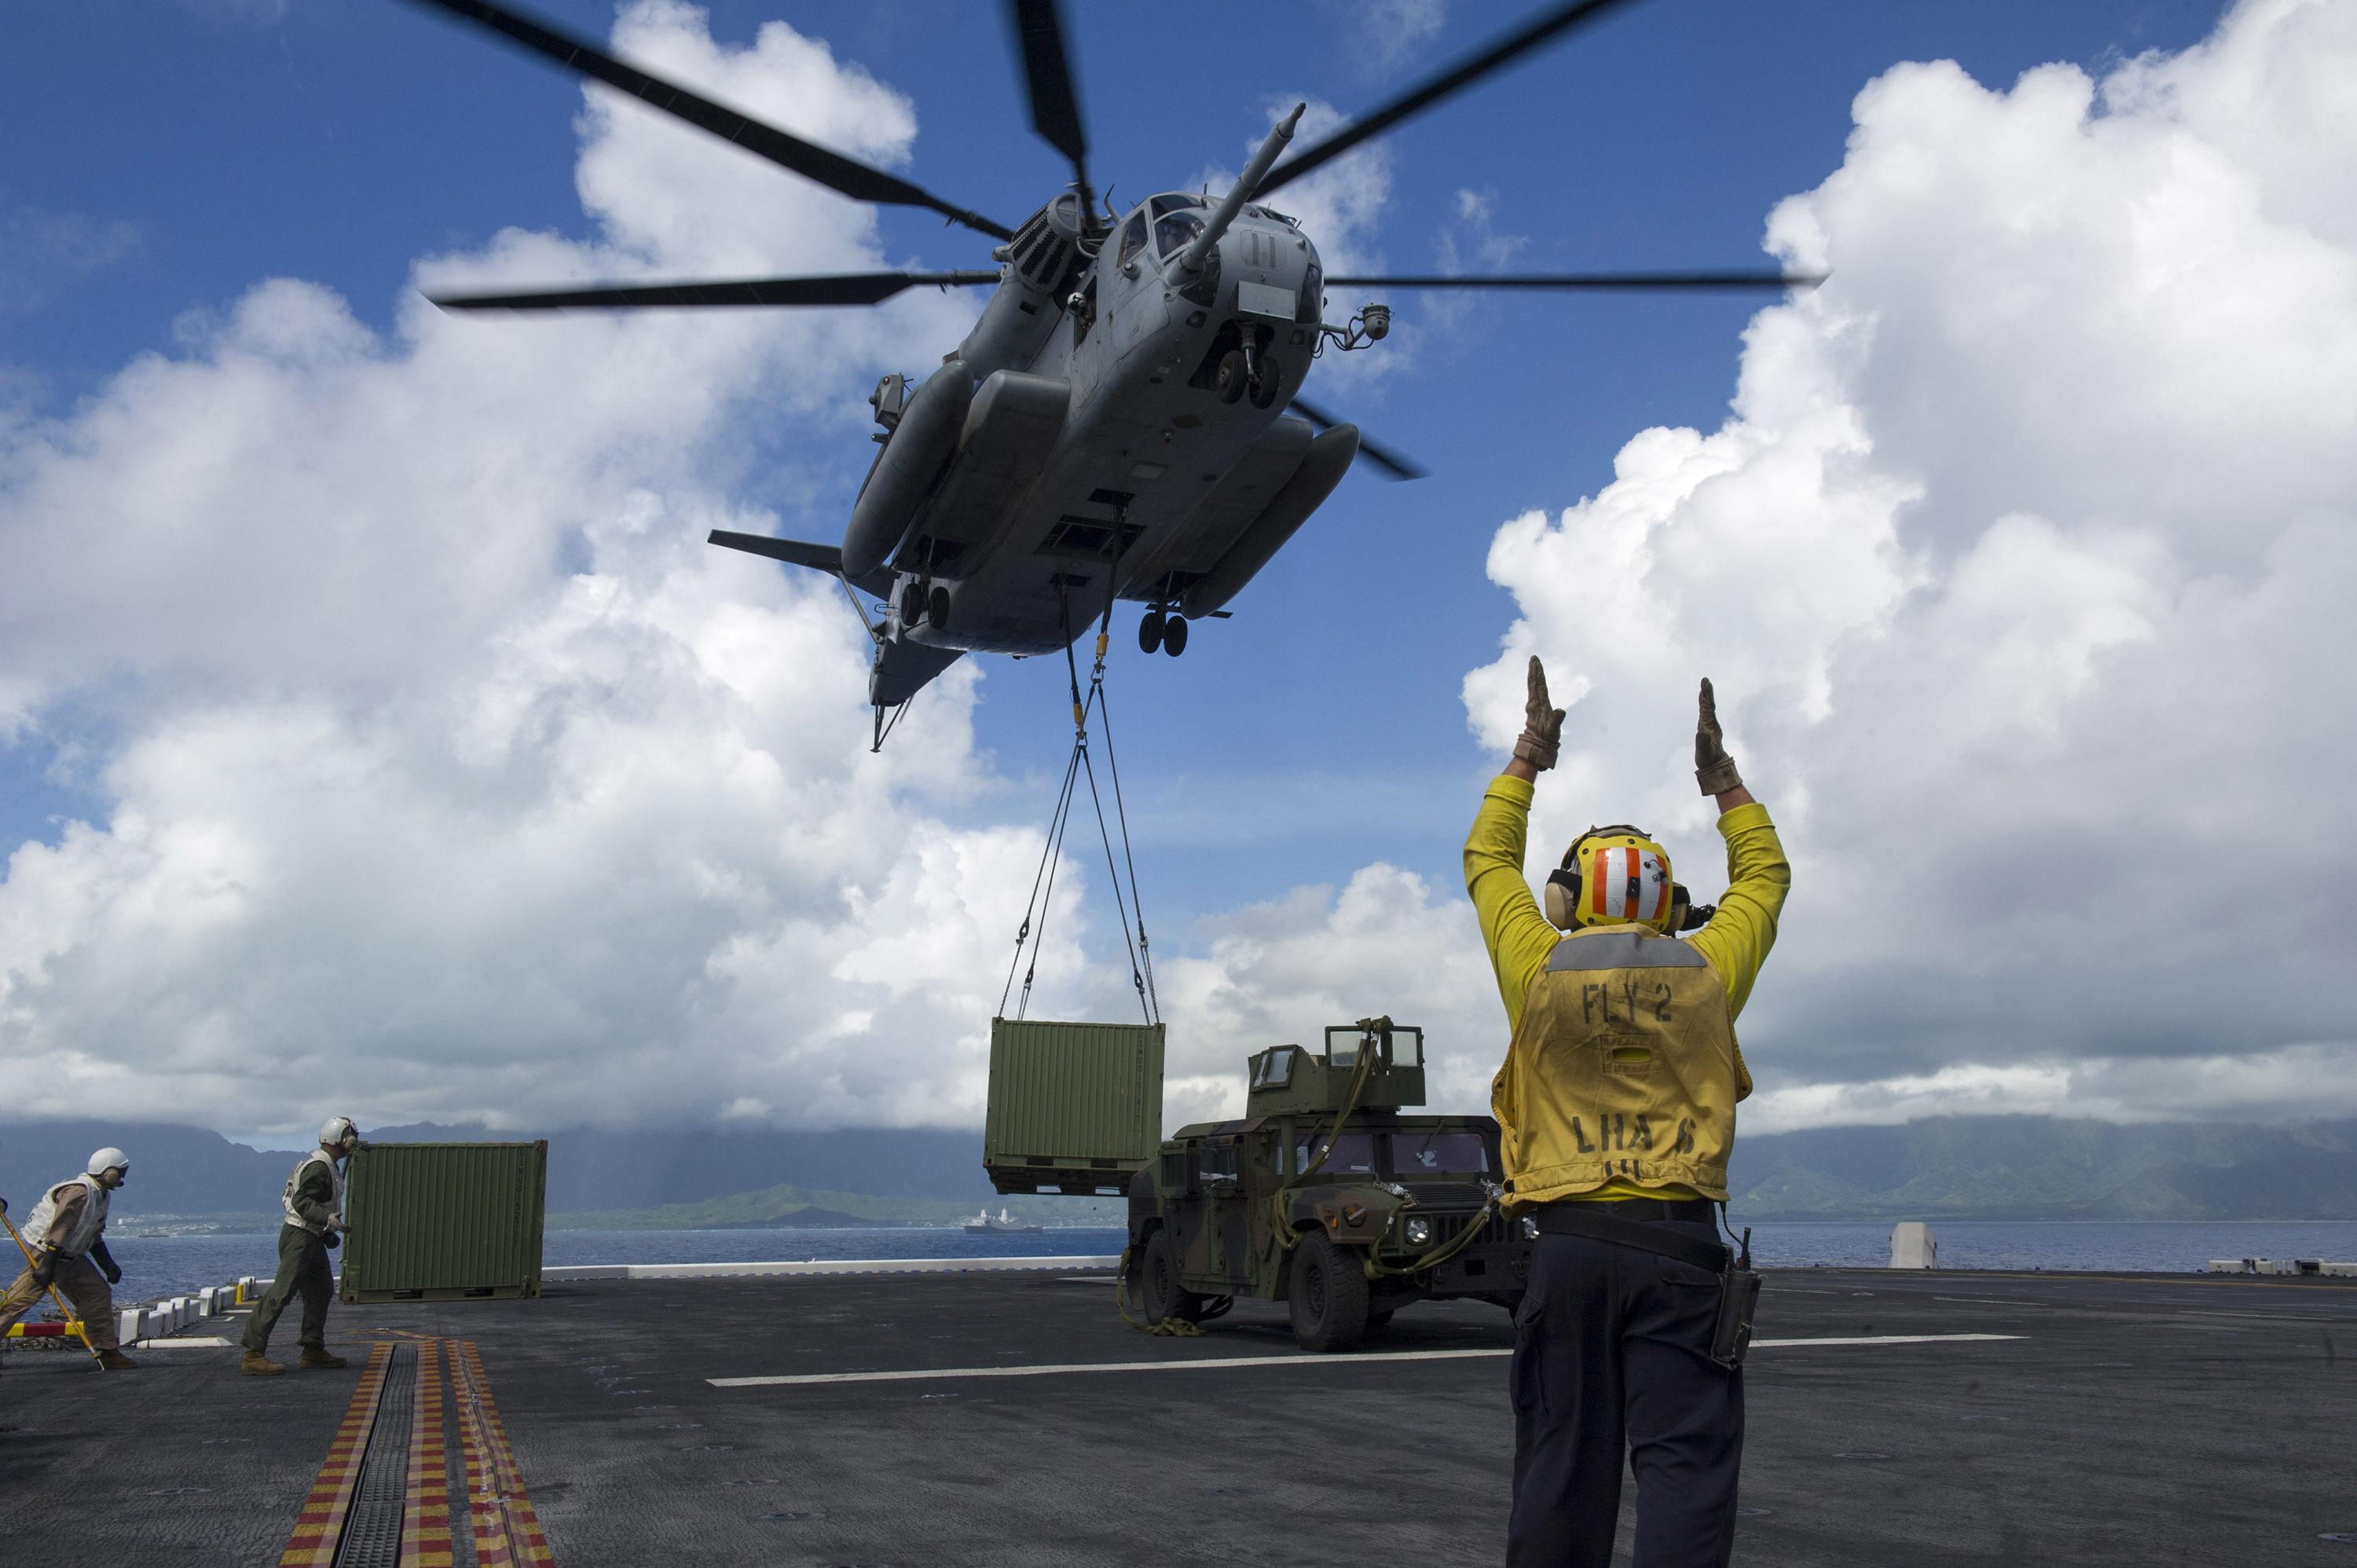 160730-N-VR008-210 PACIFIC OCEAN (July 30, 2016) – A CH-53E Super Stallion cargo helicopter assigned to Heavy Marine Helicopter Squadron (HMH) 463 lifts a supply container from the flight deck of the amphibious assault ship USS America (LHA 6). America is underway conducting maritime exercises with partner nations for Rim of the Pacific 2016. Twenty-six nations, more than 40 ships and submarines, more than 200 aircraft and 25,000 personnel are participating in RIMPAC from June 30 to Aug. 4, in and around the Hawaiian Islands and Southern California. The world's largest international maritime exercise, RIMPAC provides a unique training opportunity that helps participants foster and sustain the cooperative relationships that are critical to ensuring the safety of sea-lanes and security on the world's oceans. RIMPAC 2016 is the 25th exercise in the series that began in 1971. (U.S. Navy photo by Mass Communication Specialist 3rd Class Kyle Goldberg/Released)